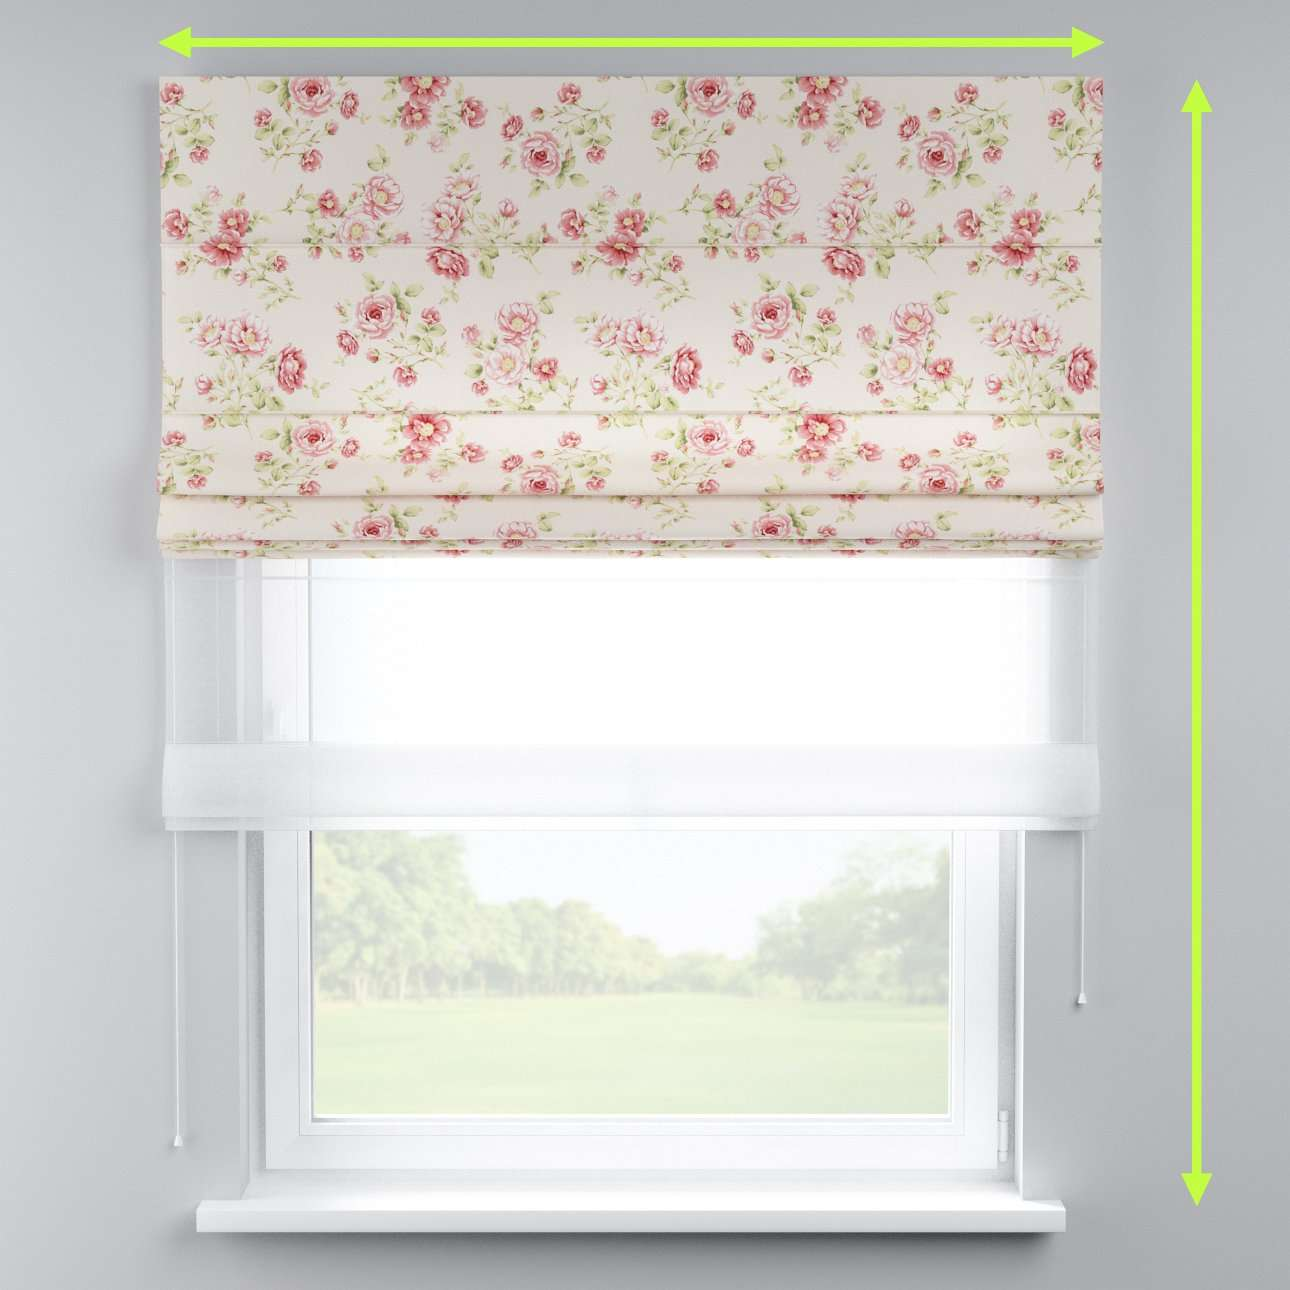 Voile and fabric roman blind (DUO II) in collection Ashley, fabric: 137-47